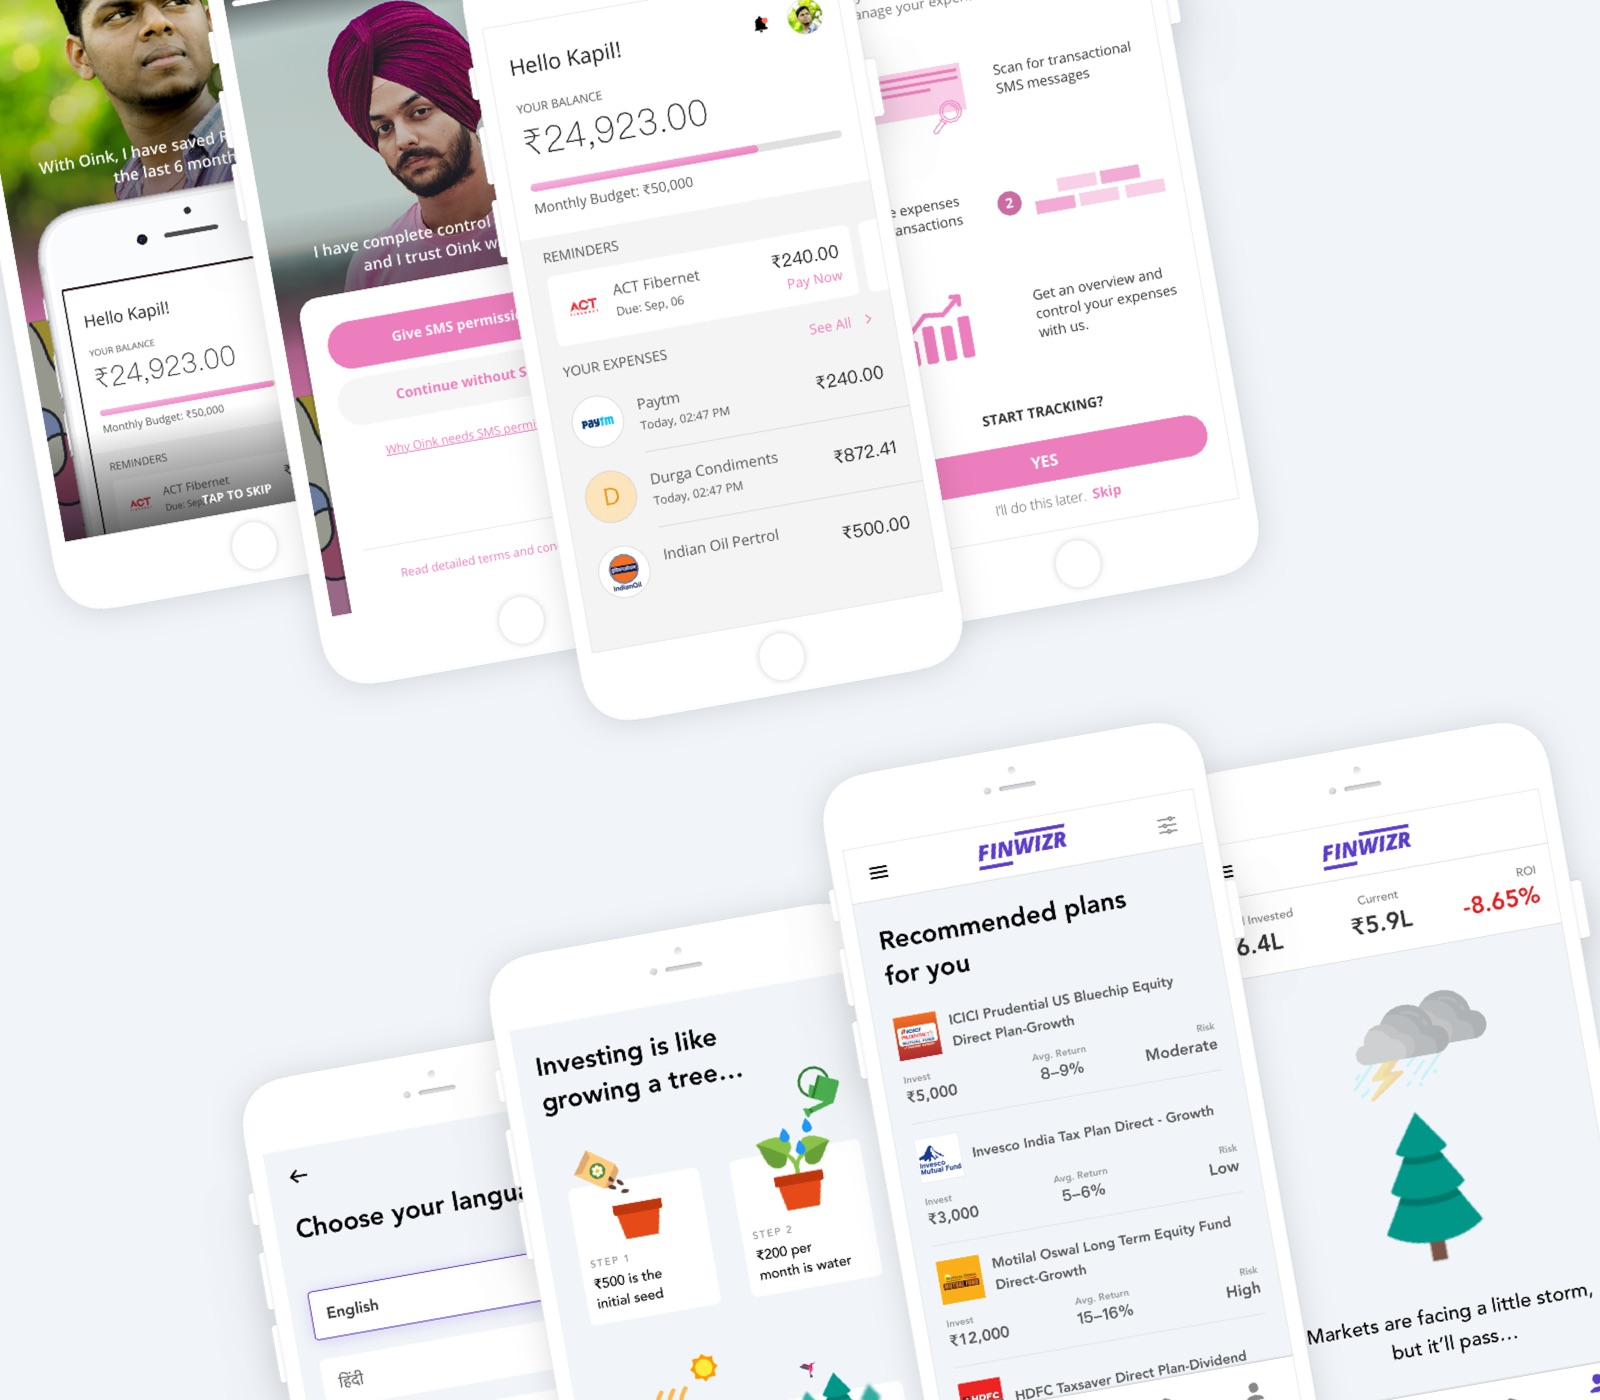 Design for bharat, facebook ttc labs prototypes by various teams